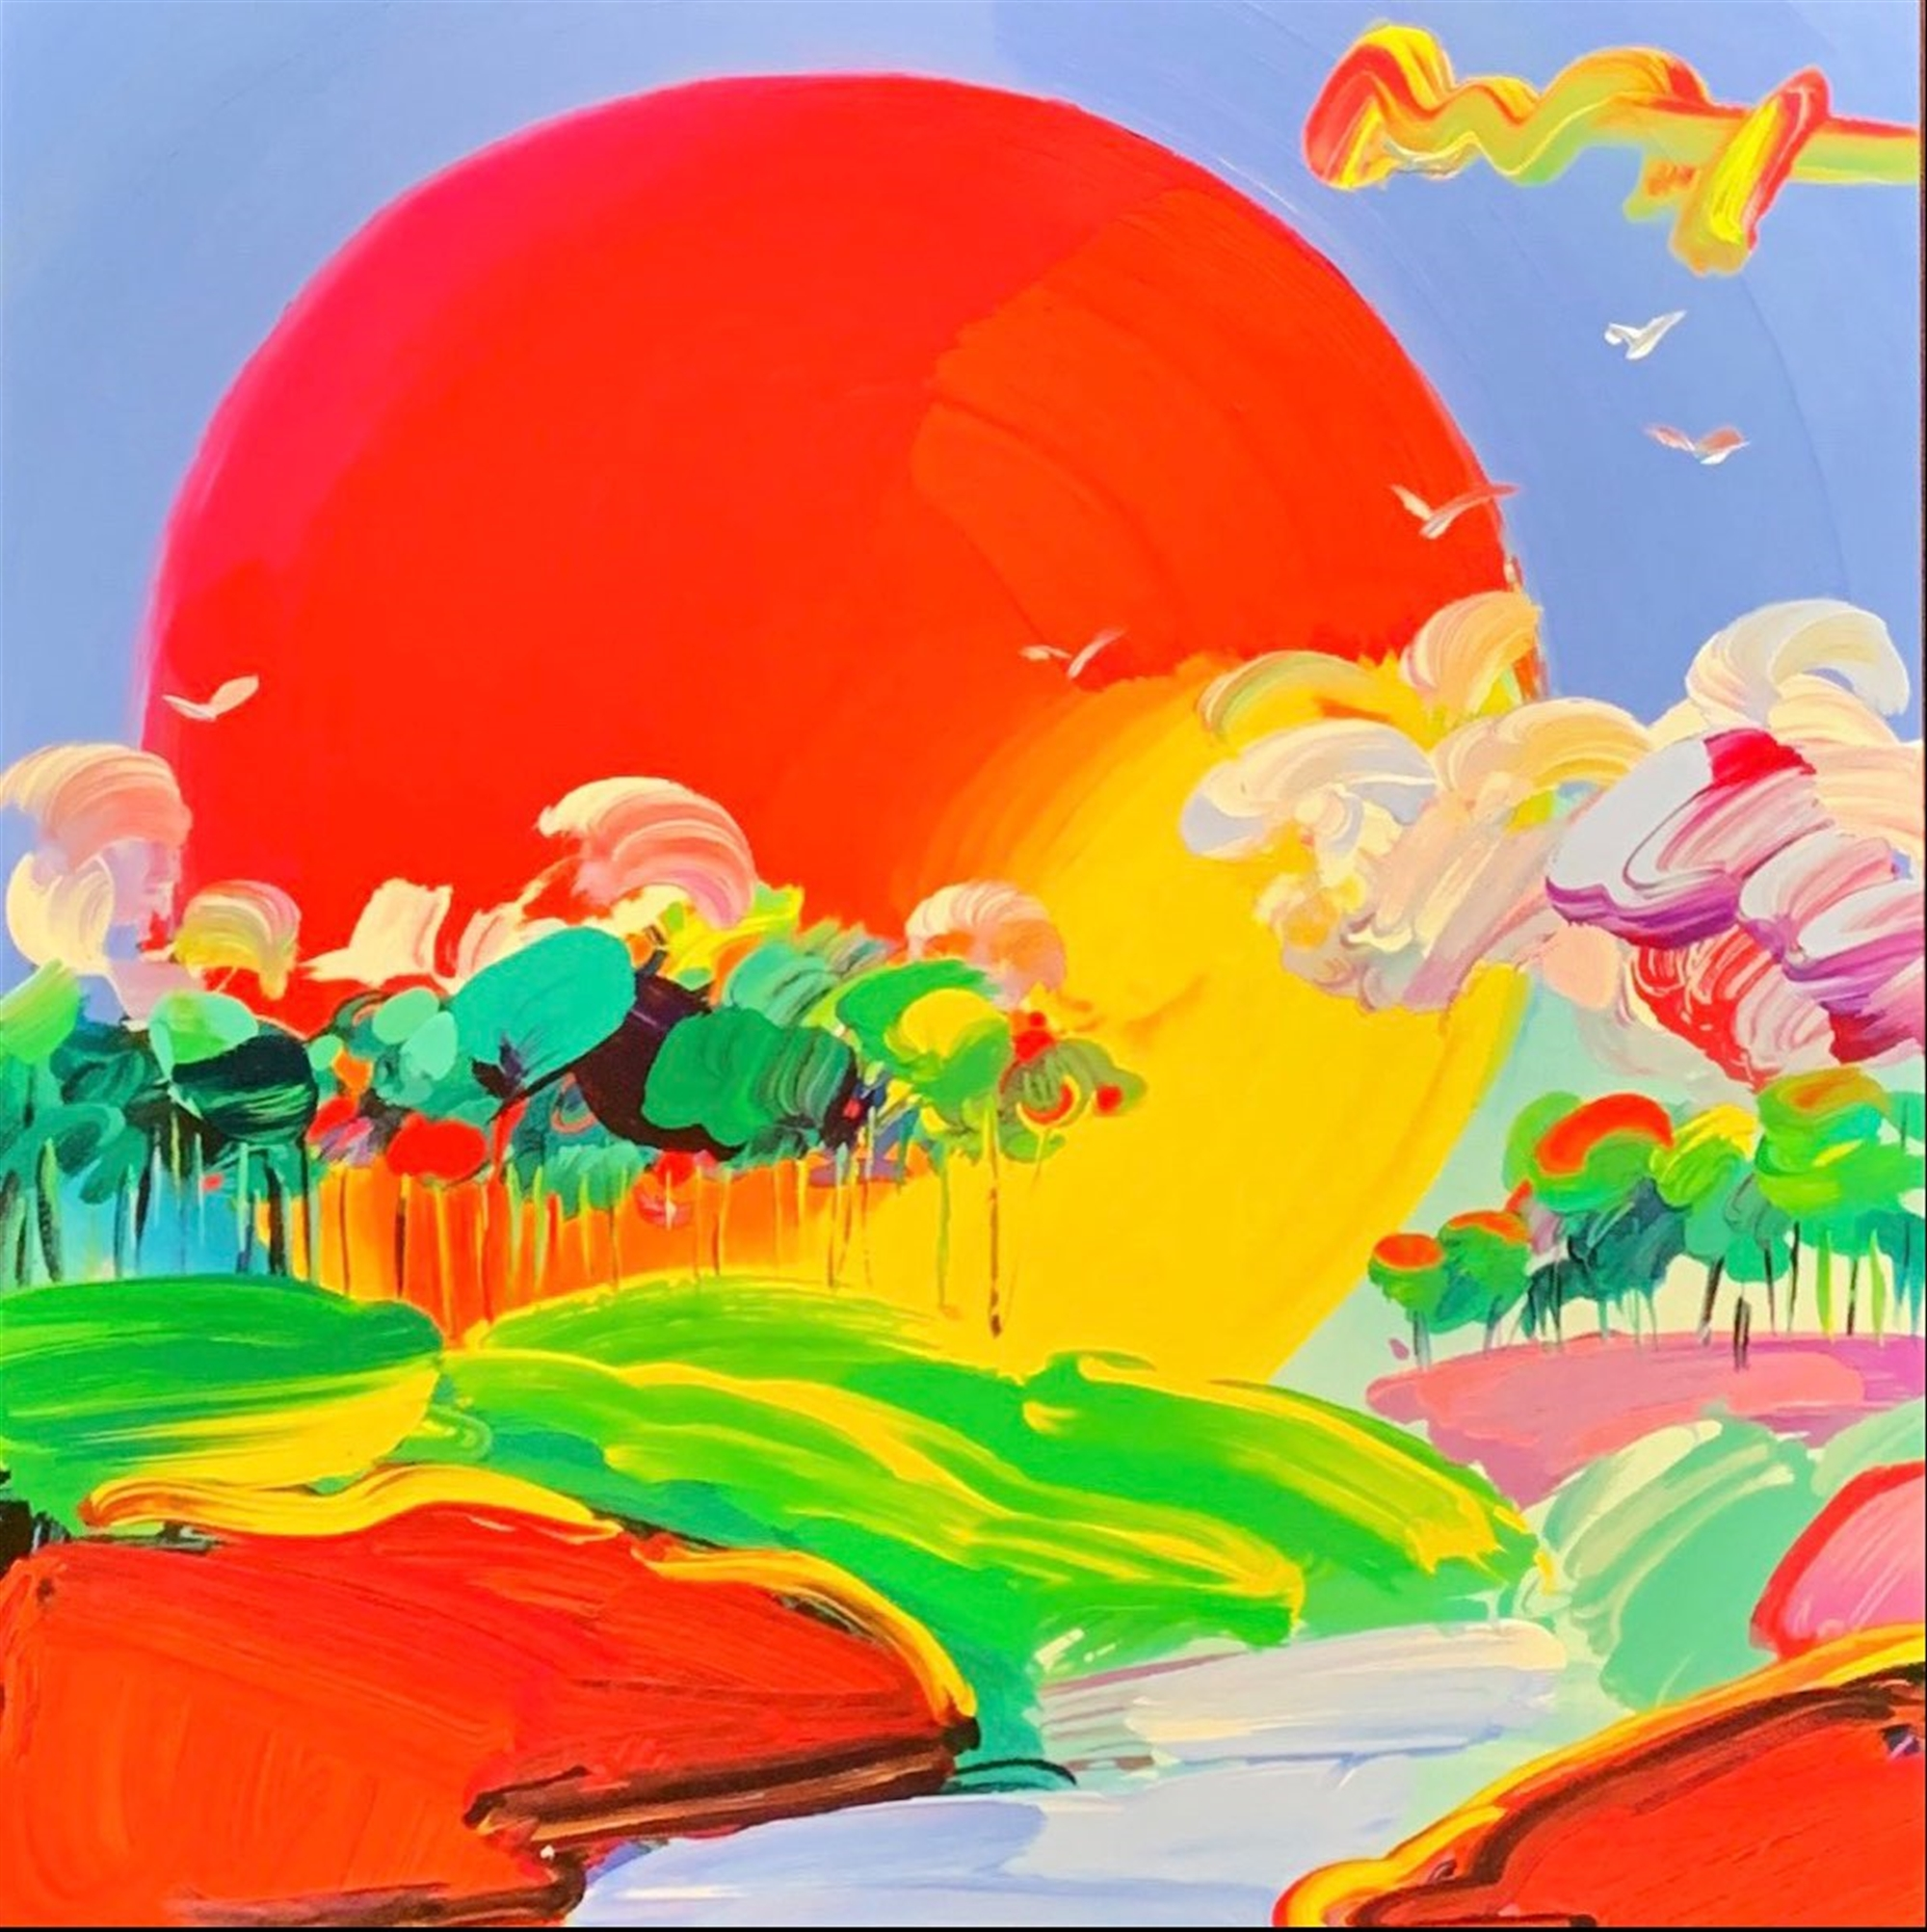 Retro: Without Bordres by Peter Max